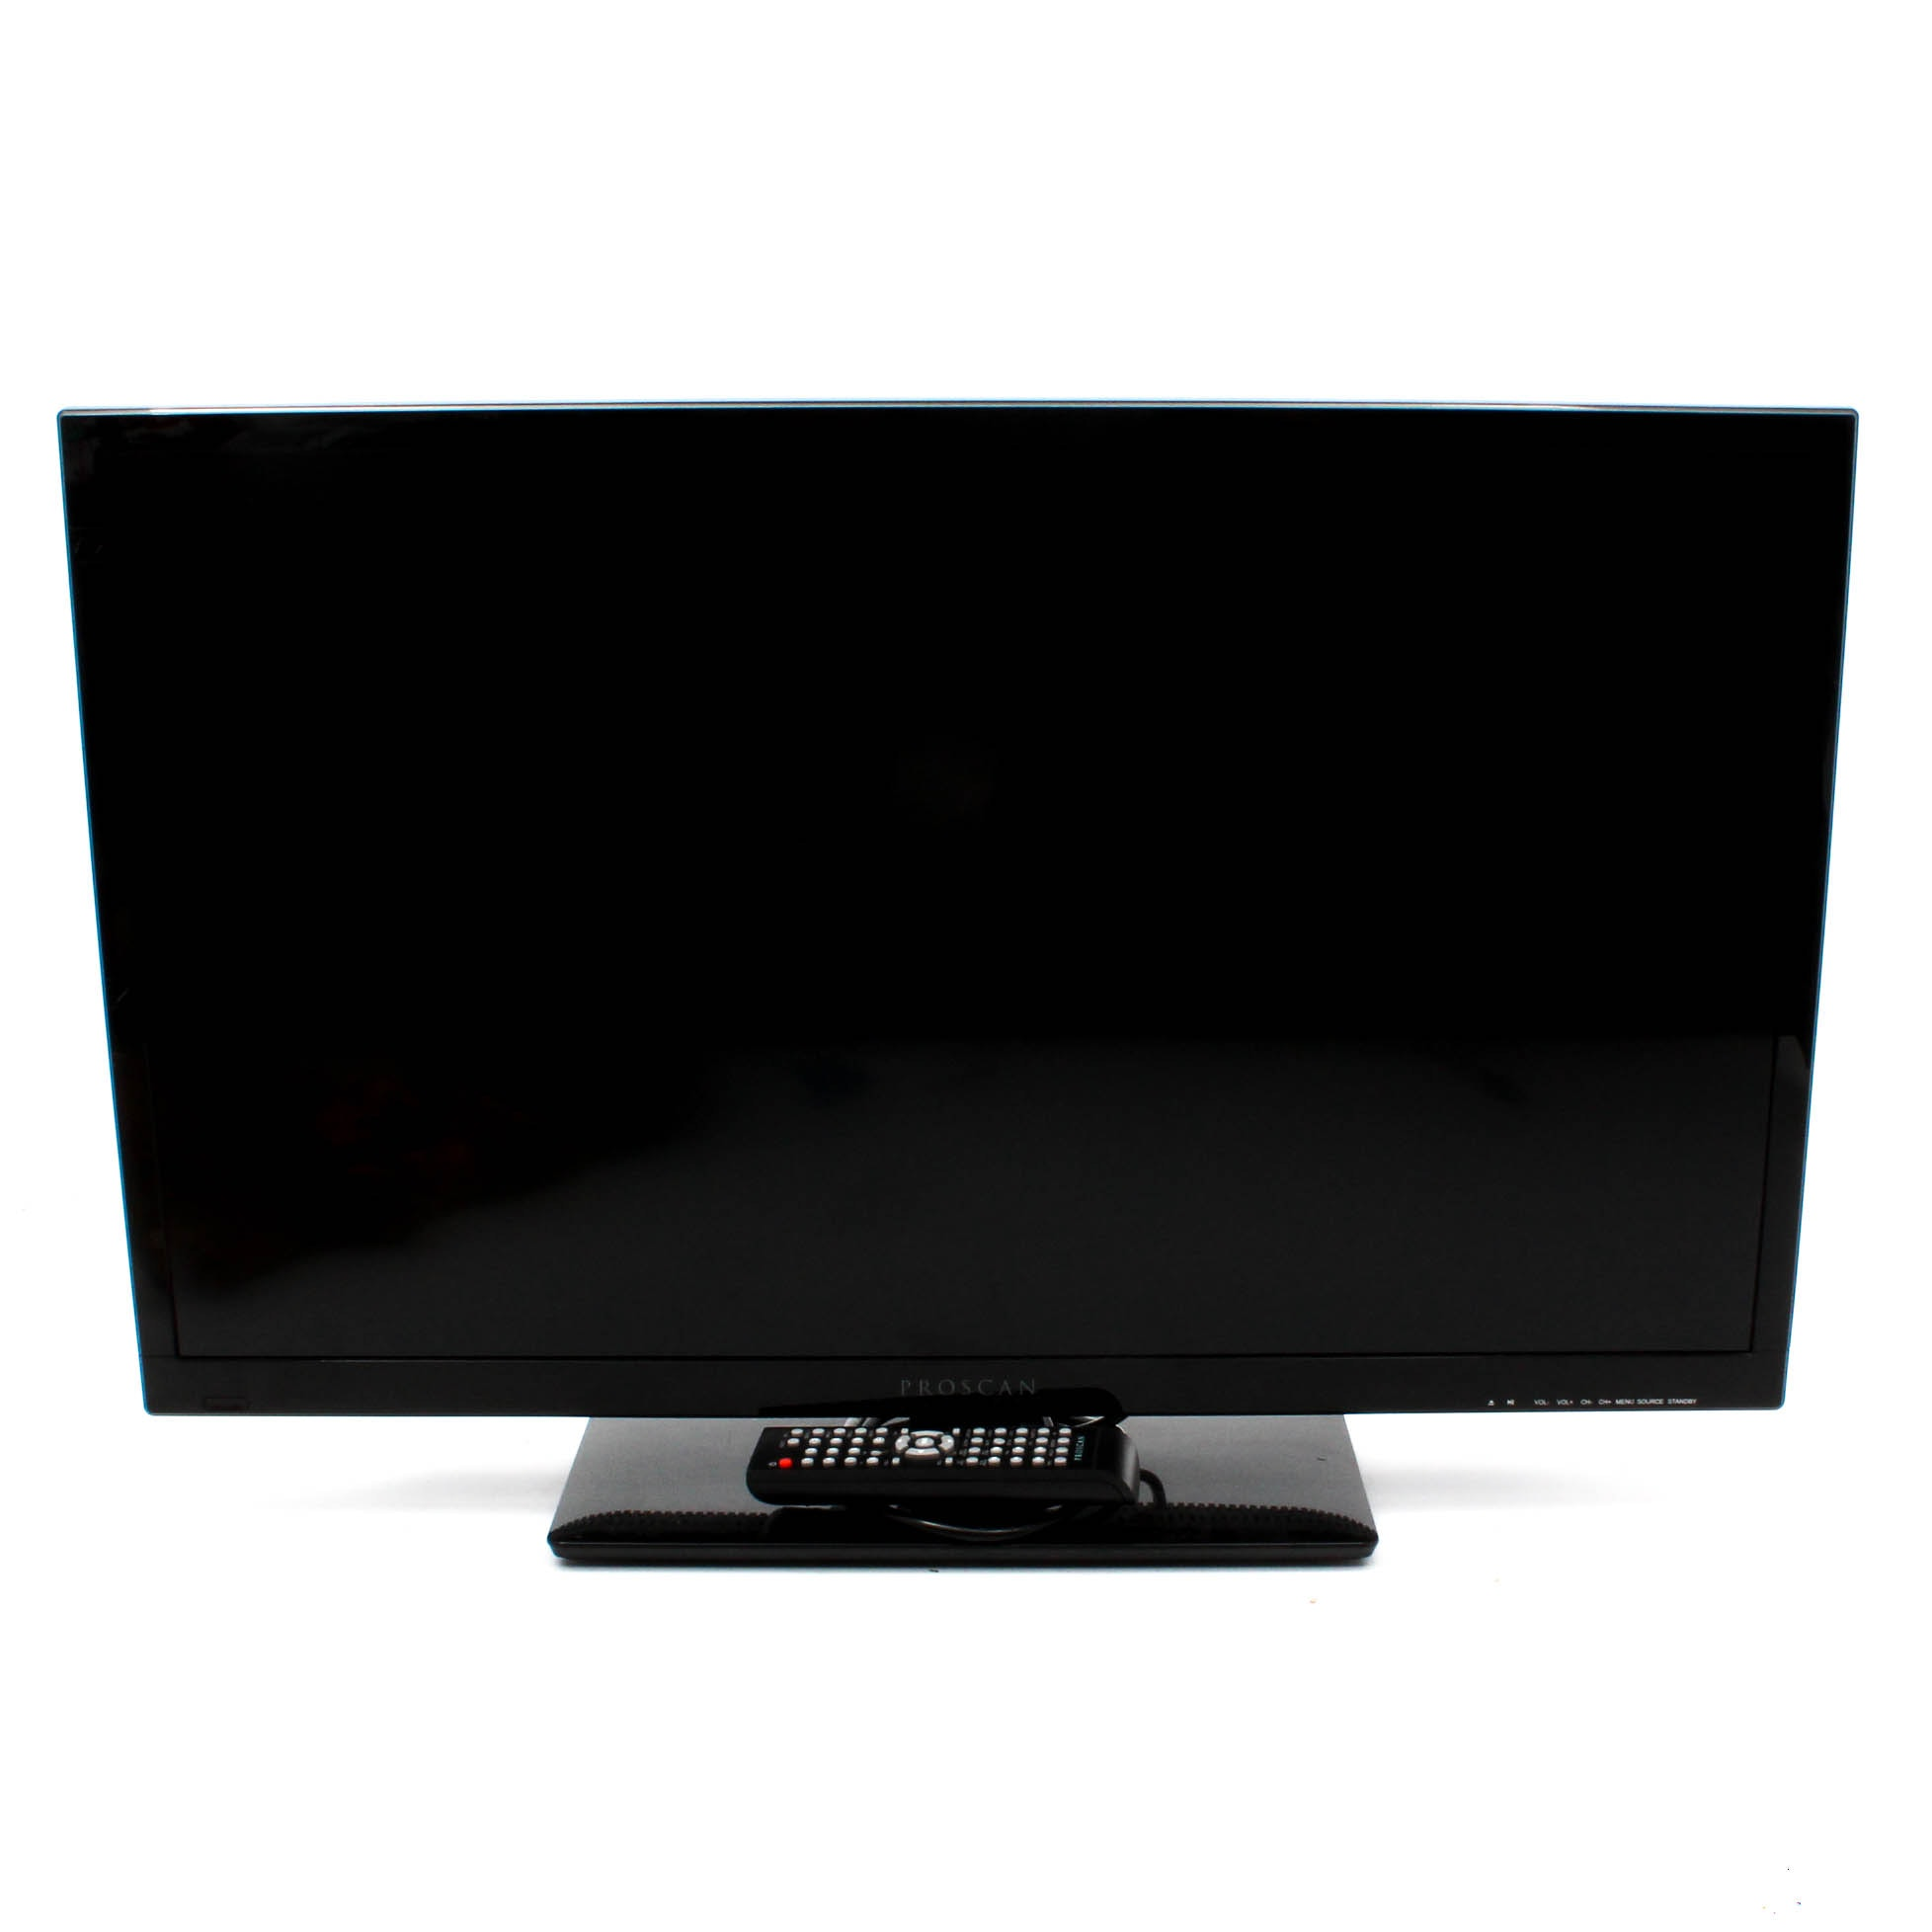 "Proscan 32"" Flat Screen Television"